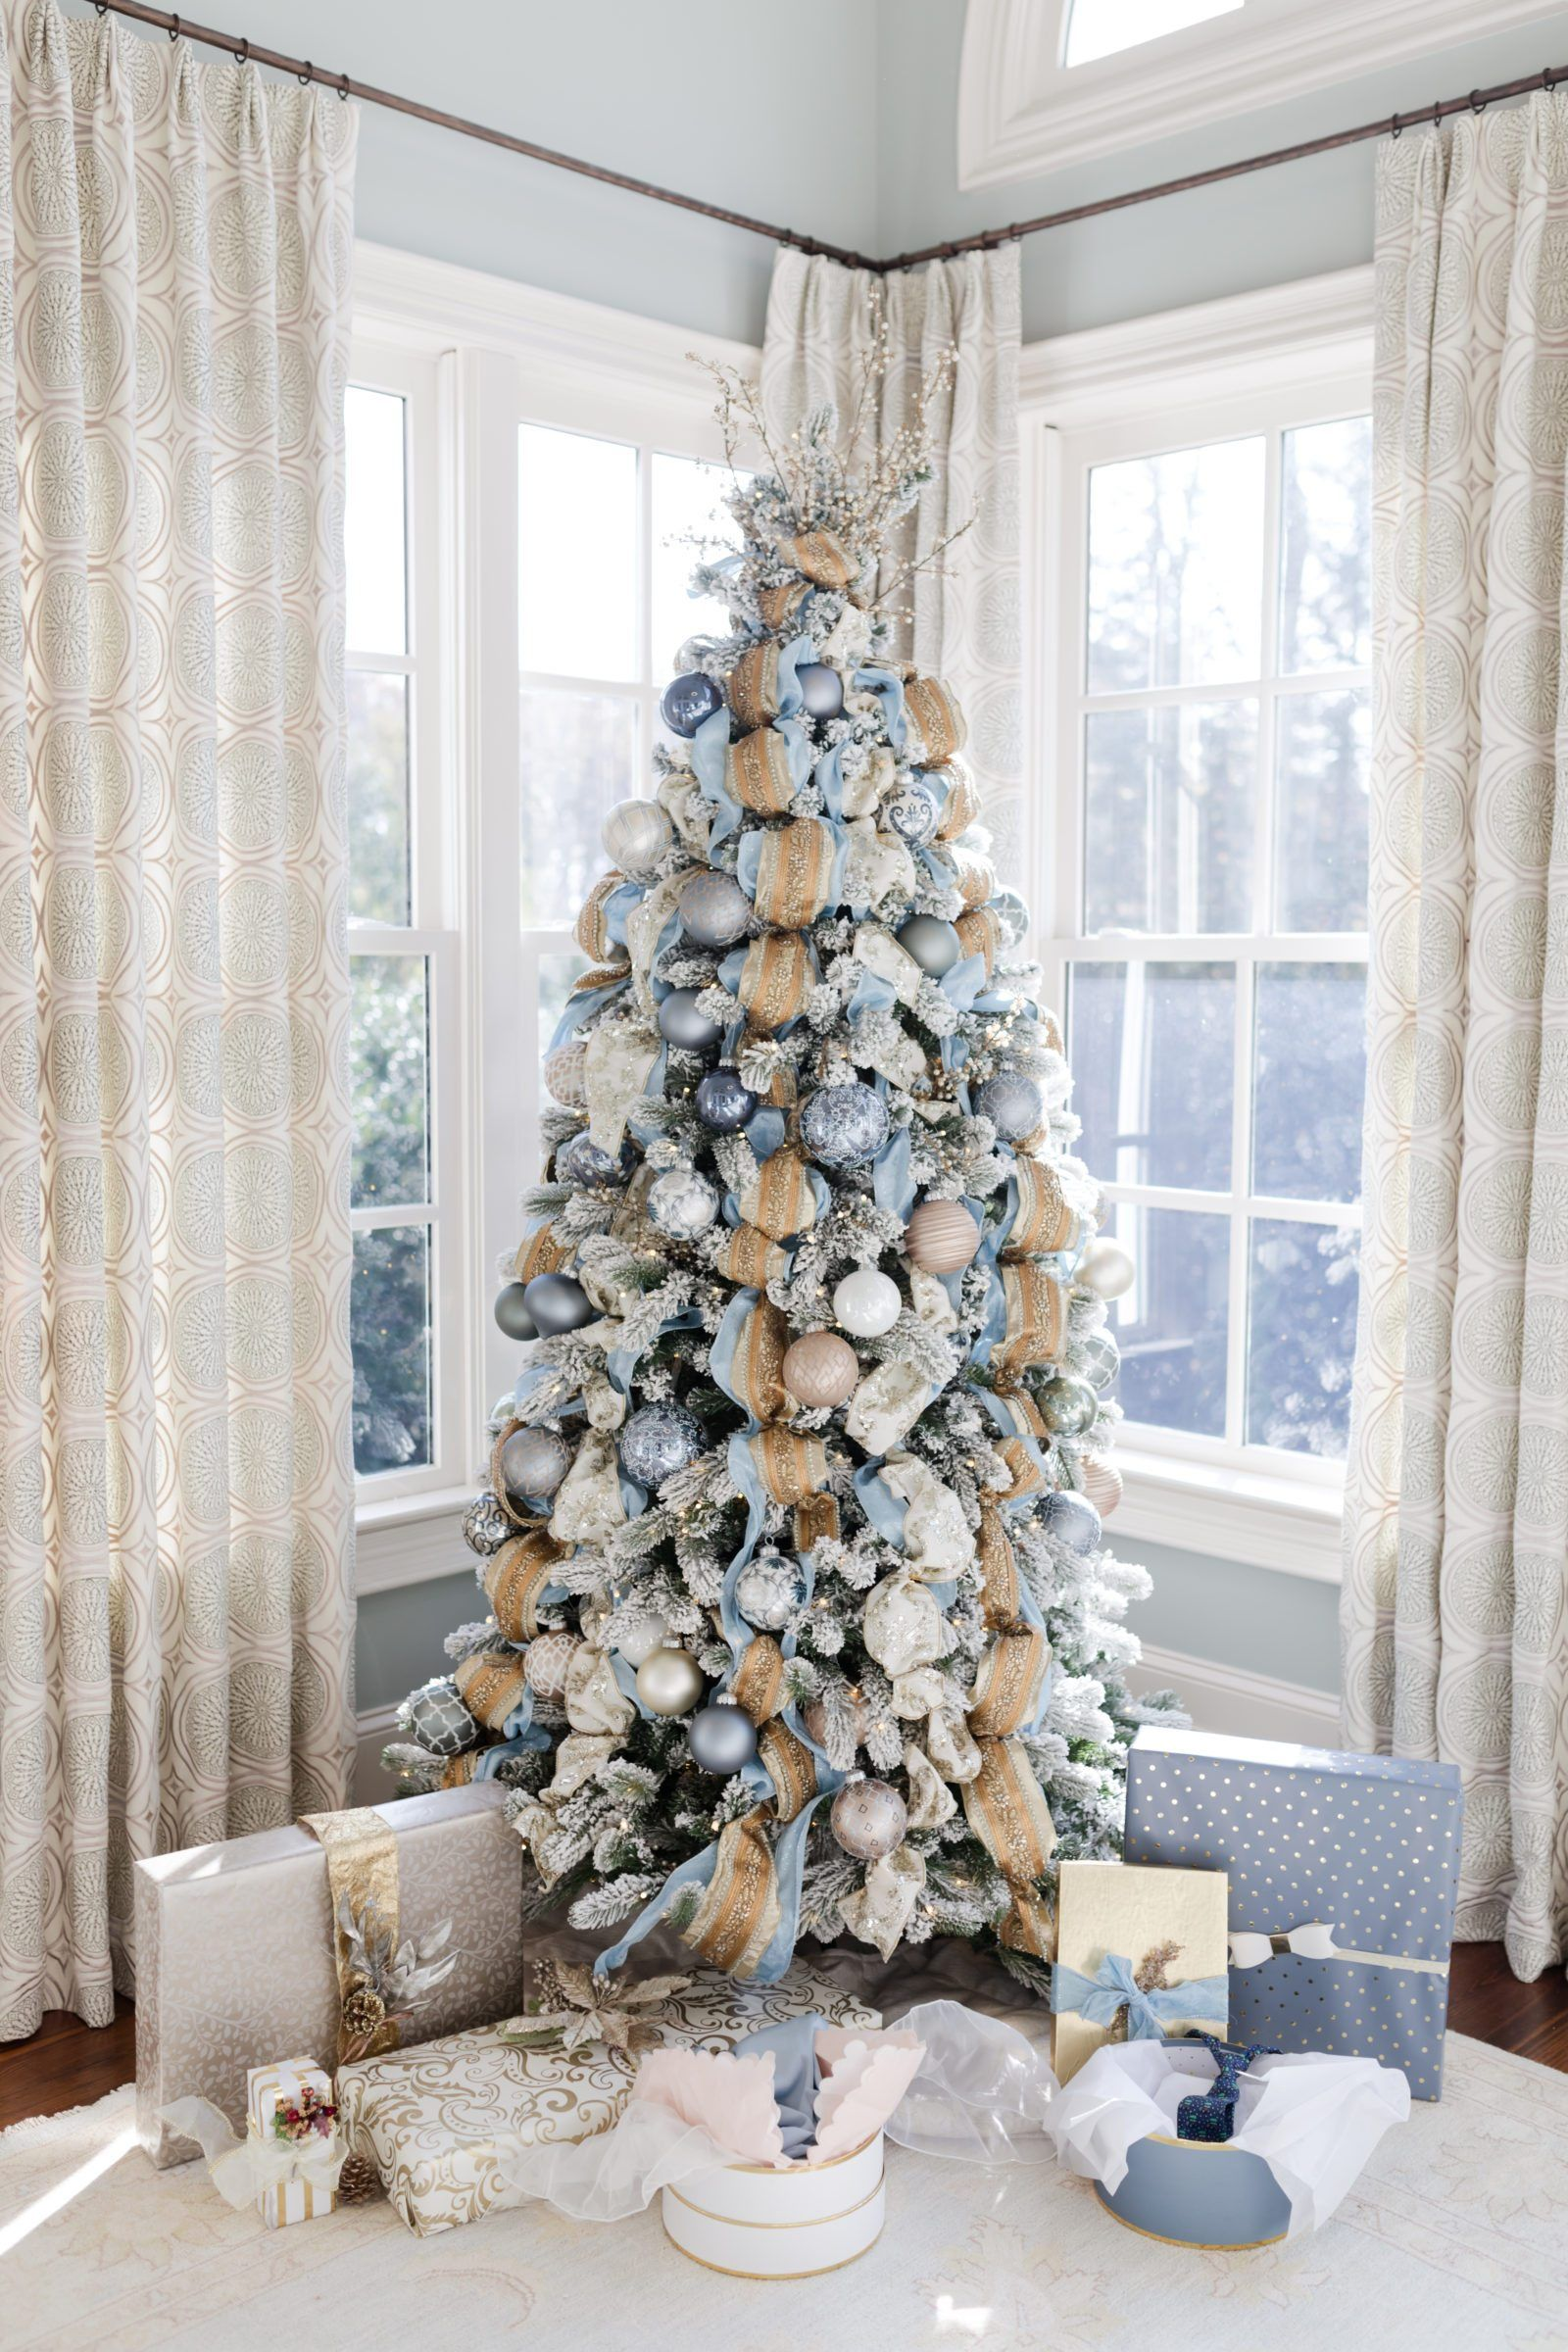 Gold And Blue Christmas Tree Holiday Inspiration For Decorating For